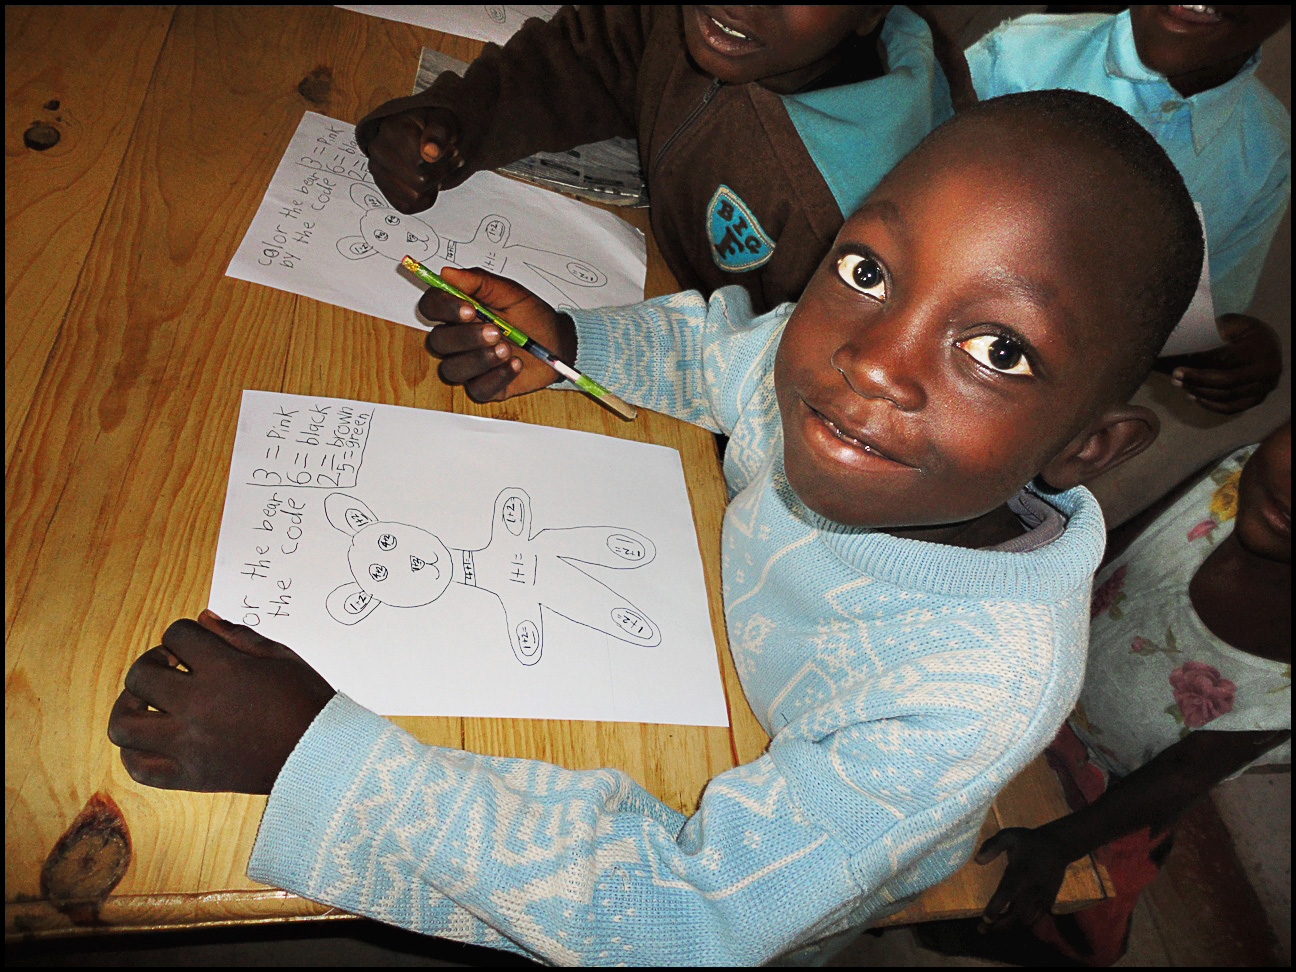 Worksheets For School Kids In Africa